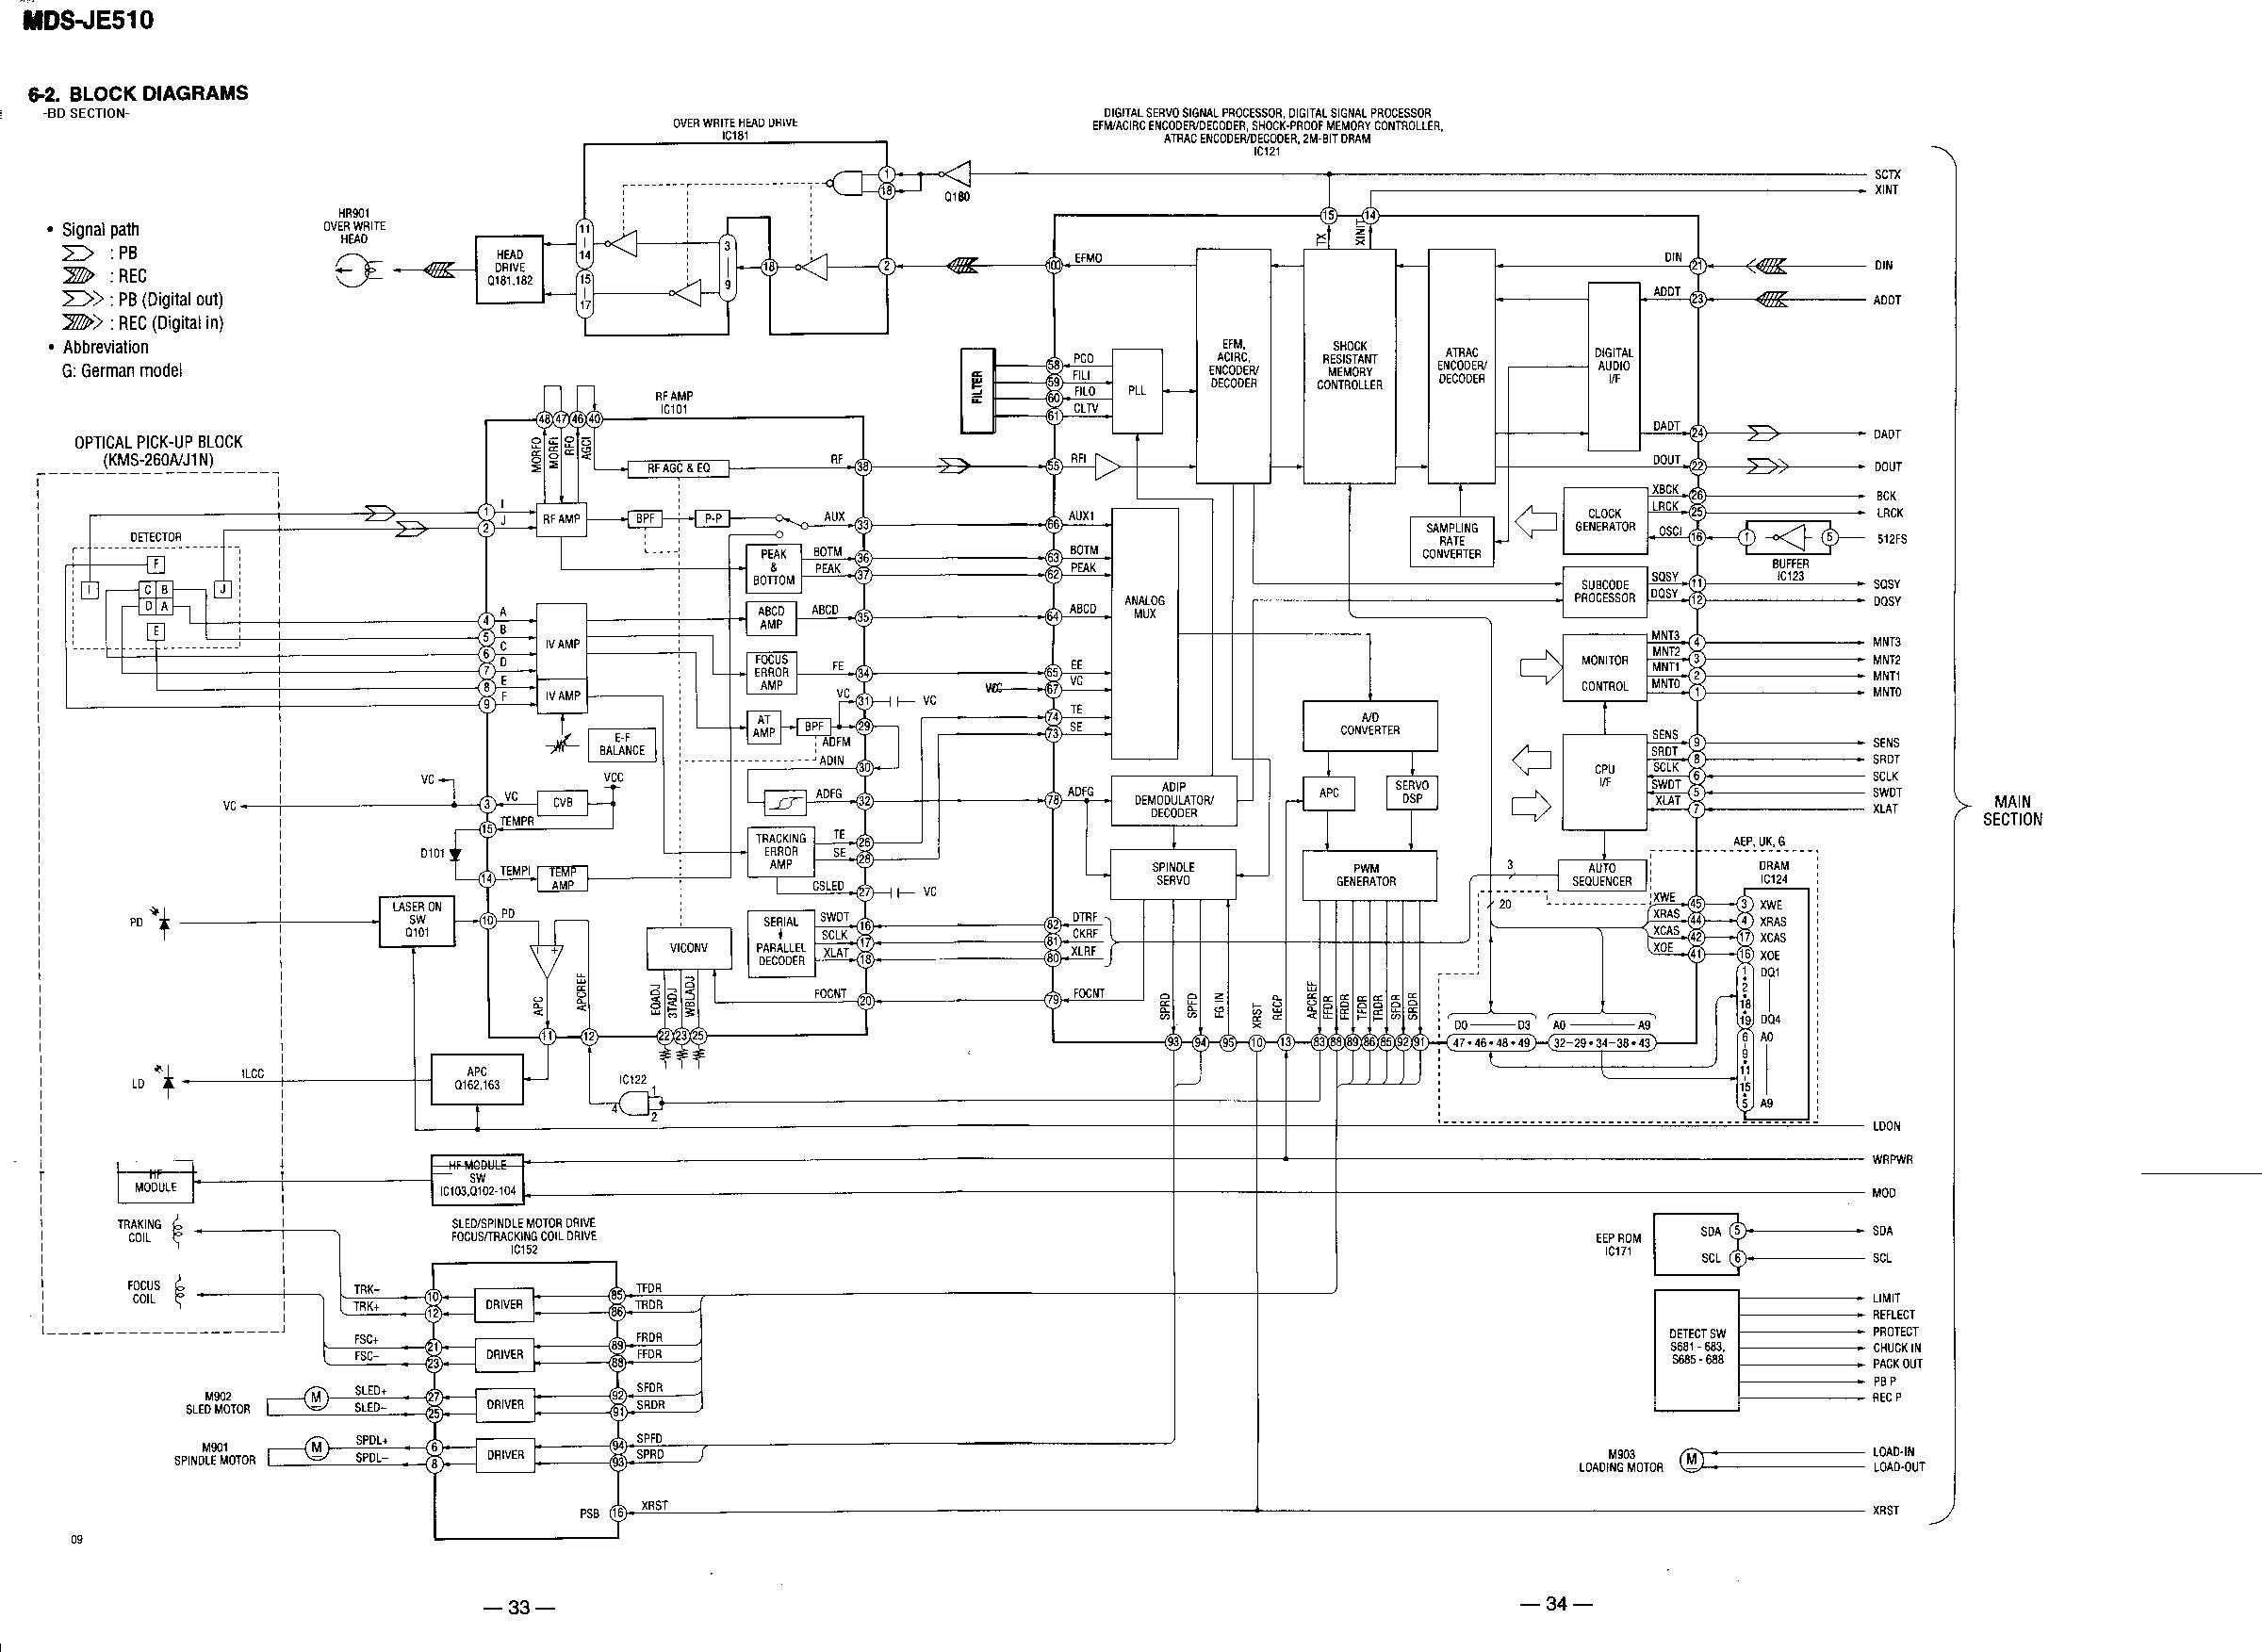 edis 4 wiring diagram homeline outdoor load center sigma s30 24 images